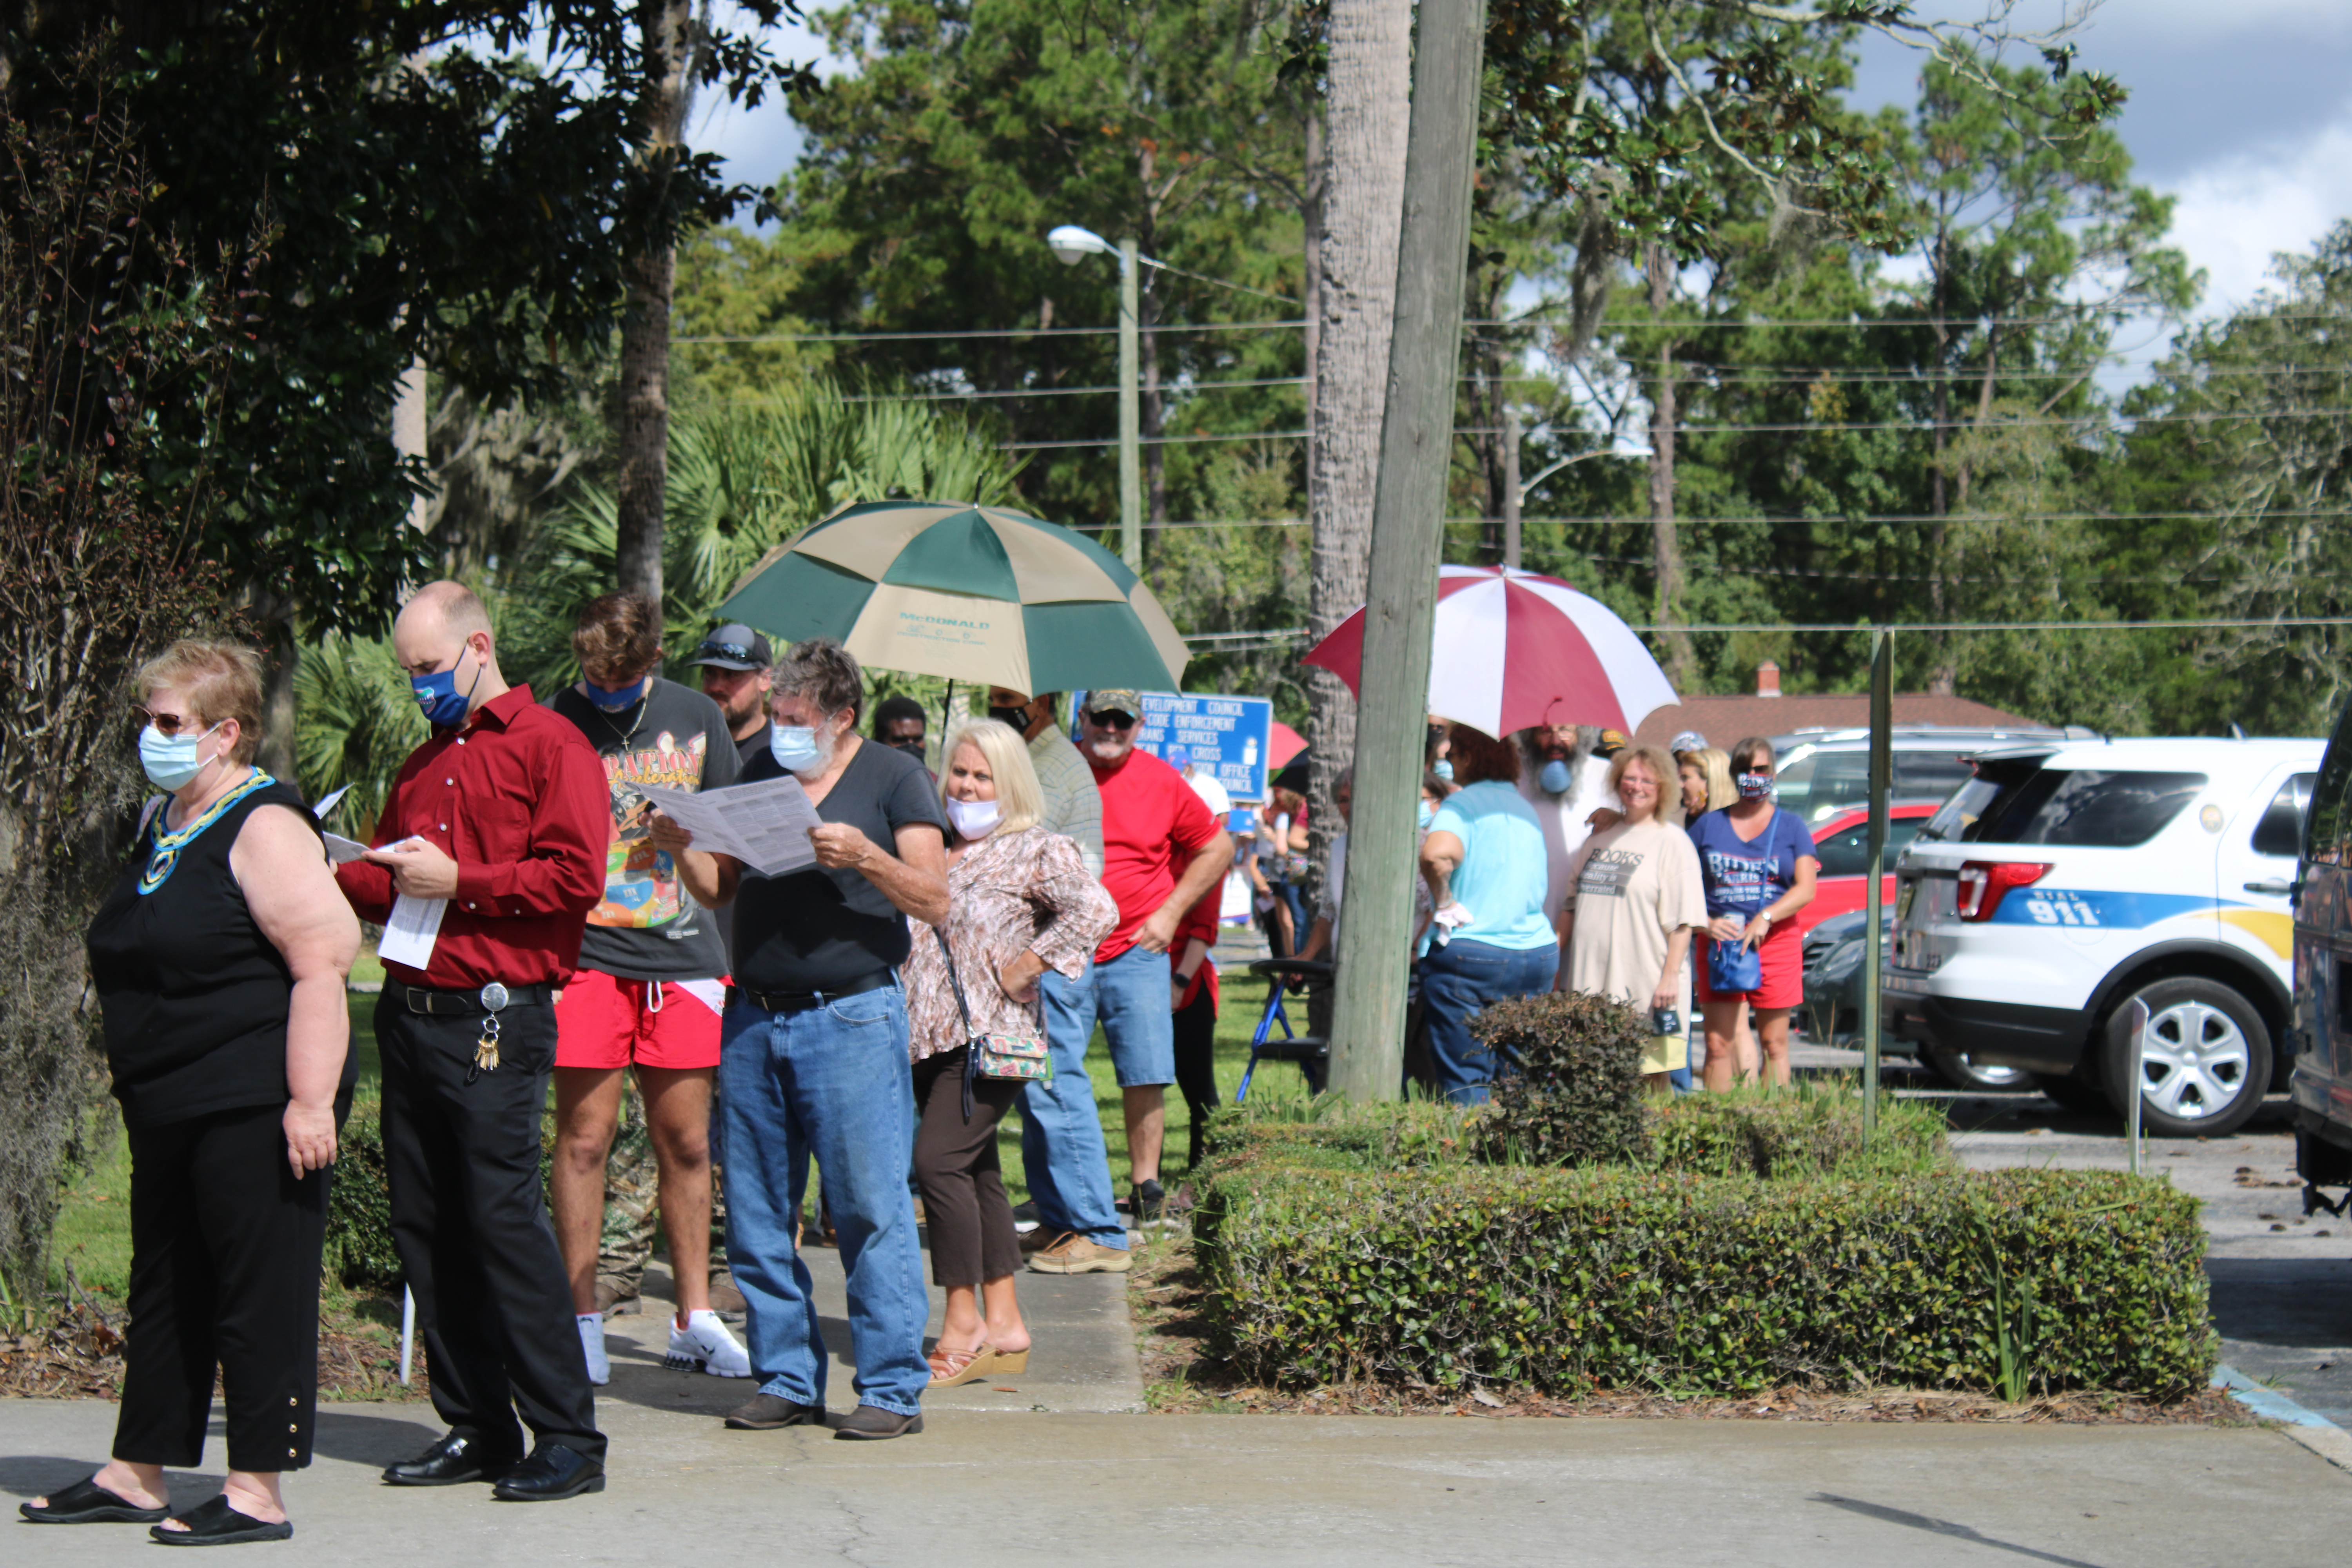 Voters wait in line outside the Columbia County Supervisor of Elections Office Thursday during the first day of early voting. More than 1,700 local voters cast ballots during the first day of early voting. (TONY BRITT/Lake City Reporter)